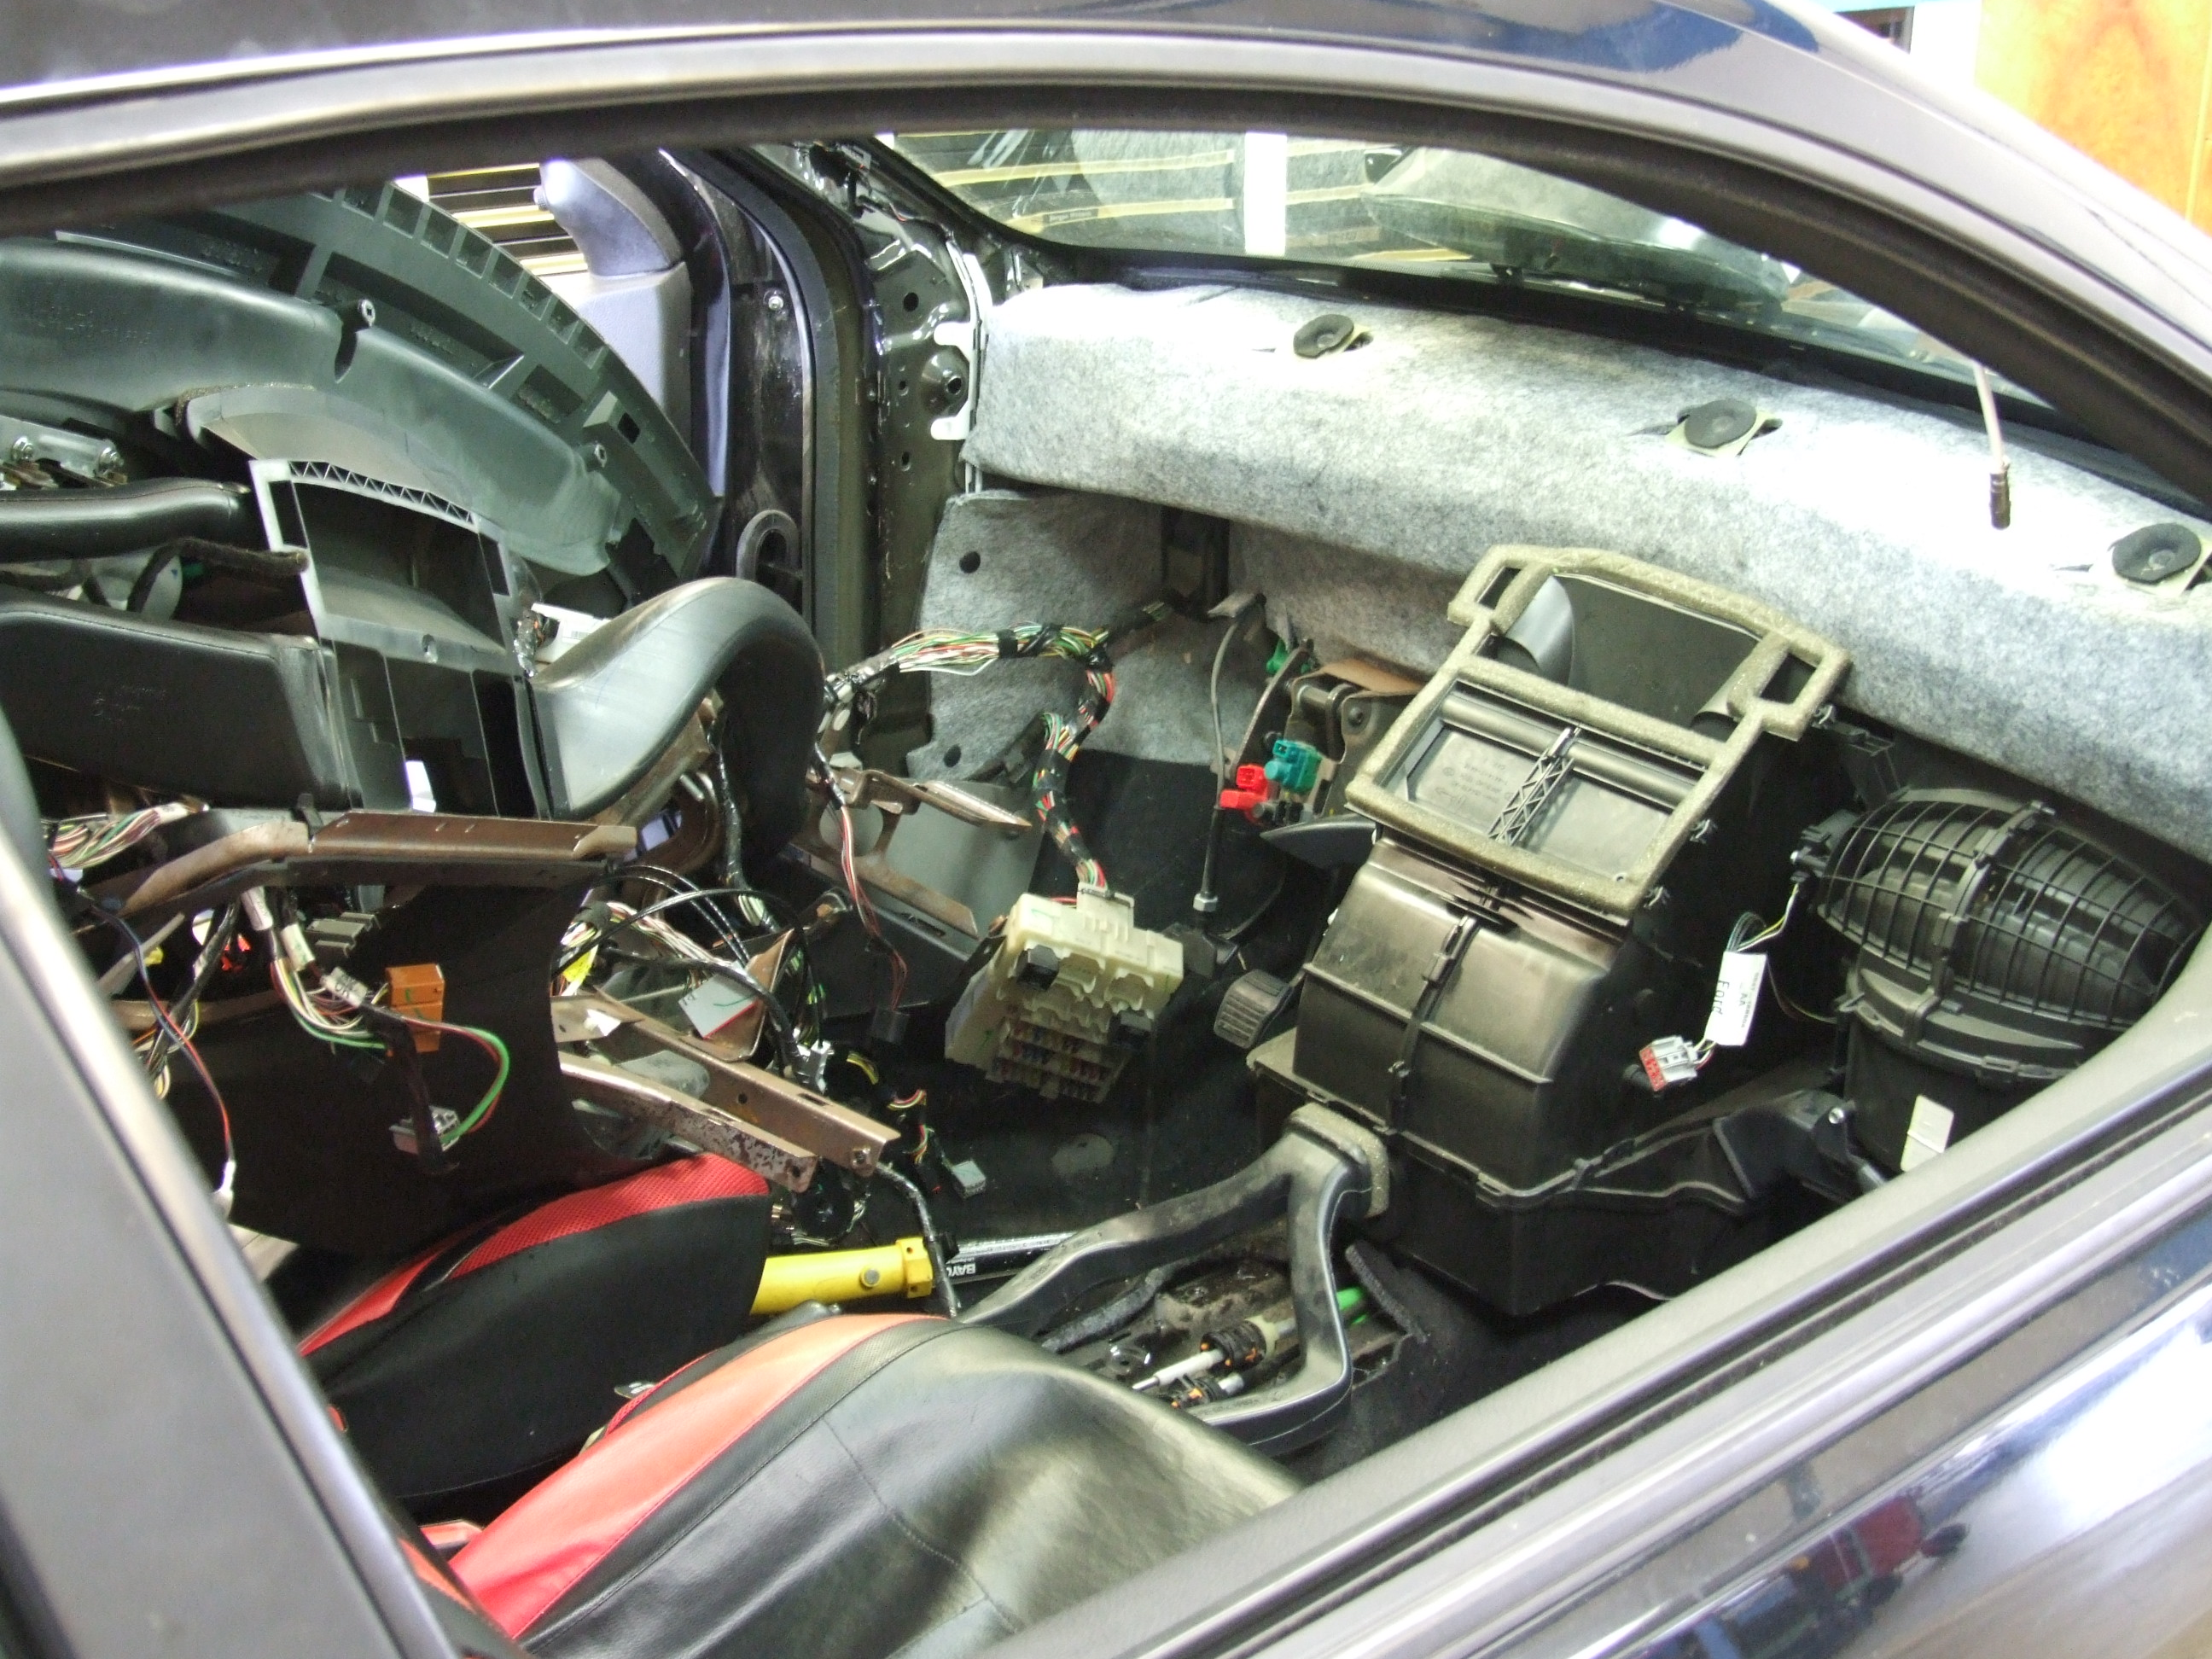 Ford Focus with dash removed